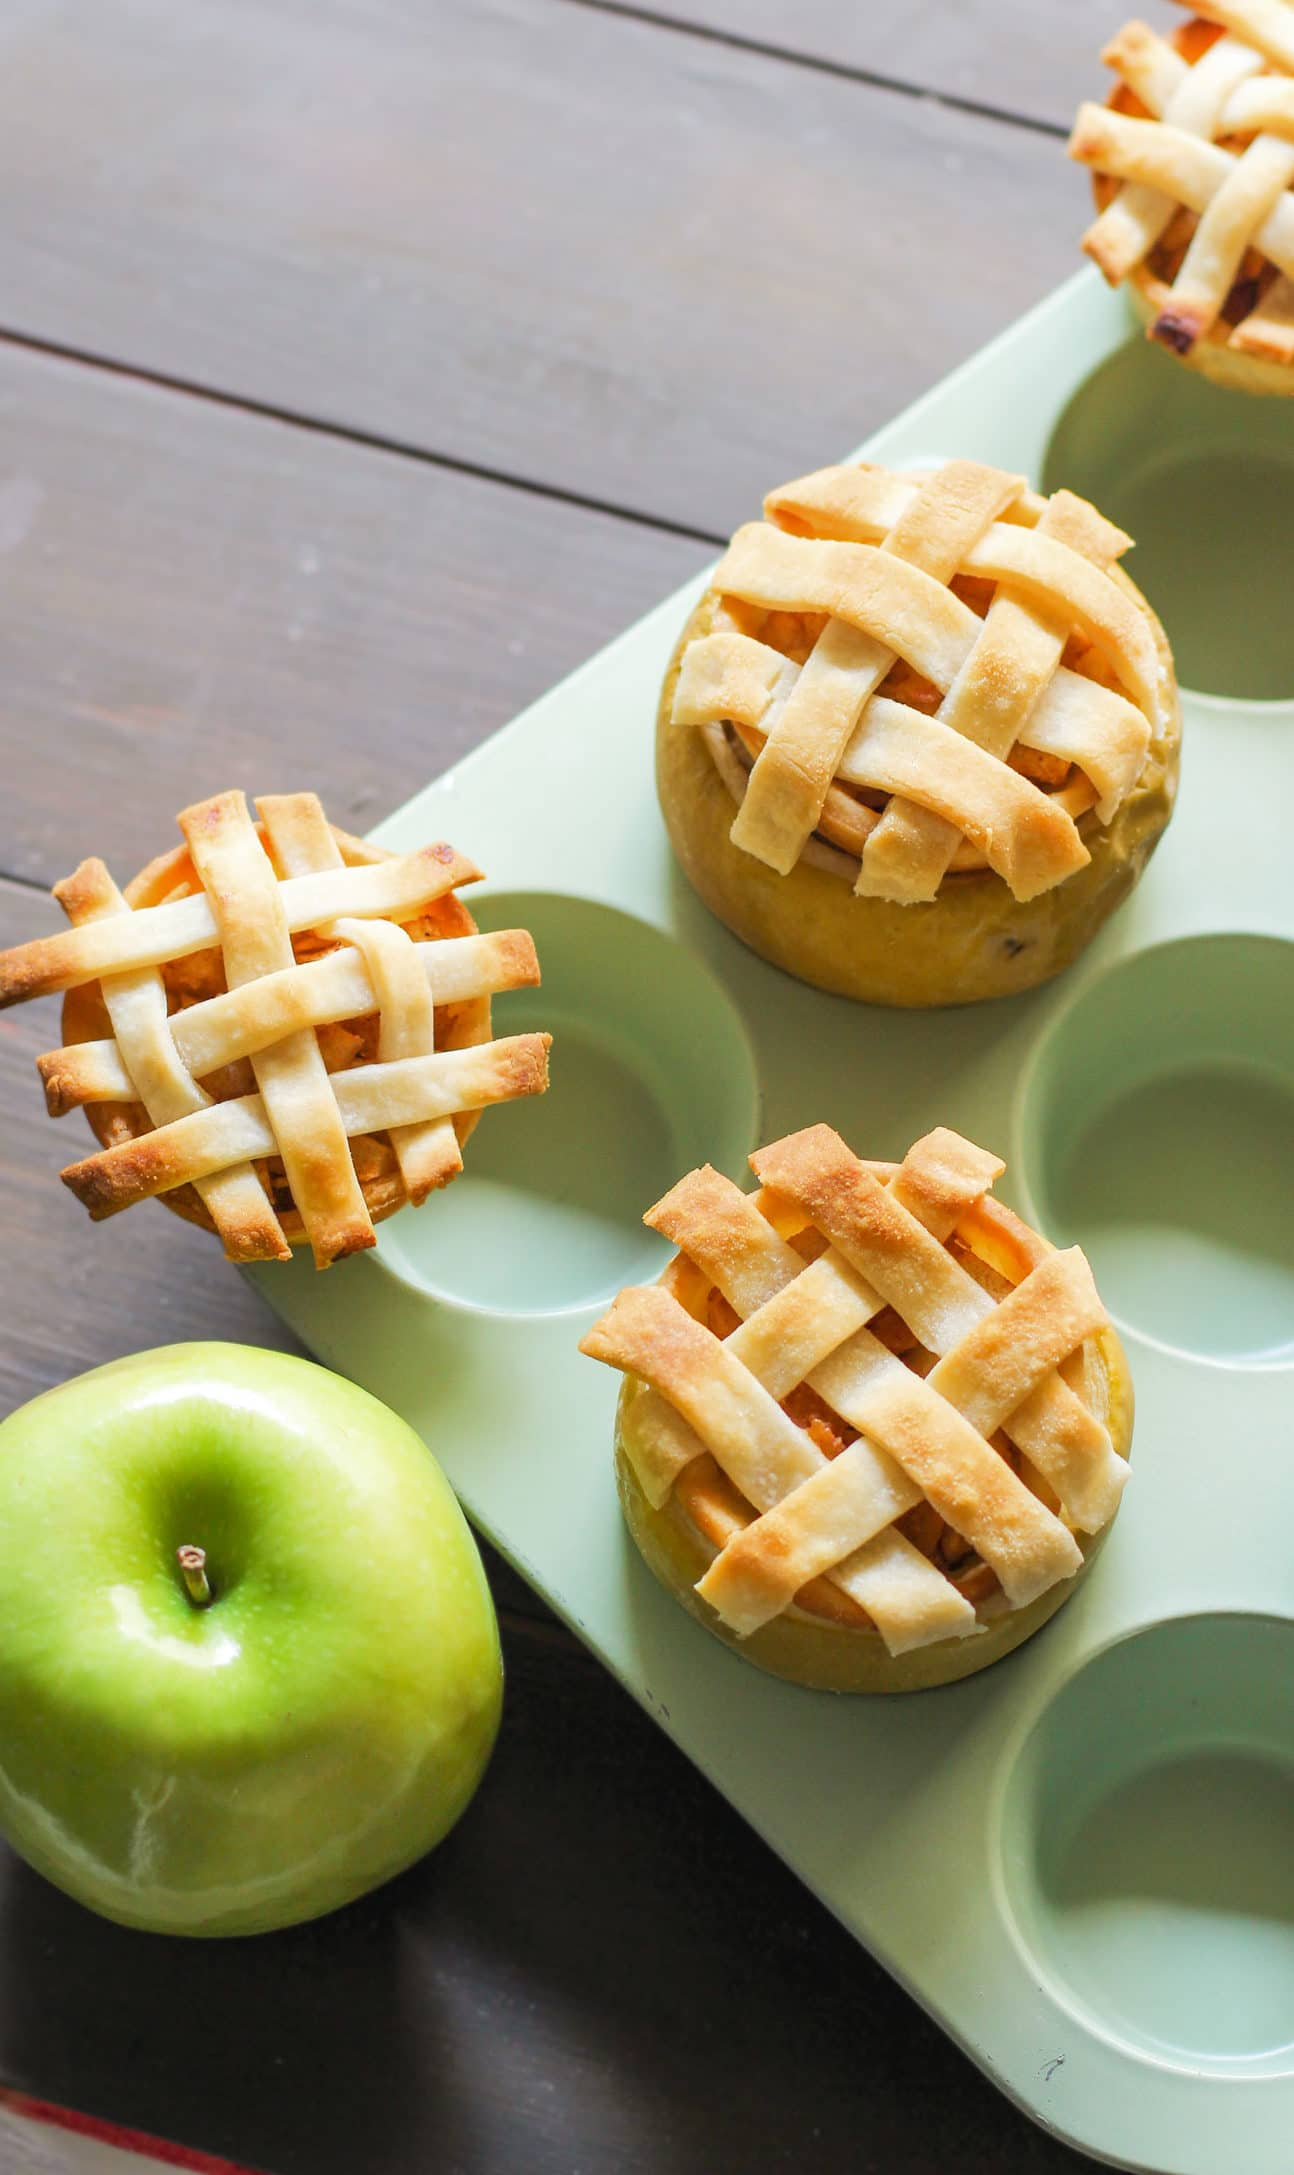 Looking for a unique healthy apple pie recipe? No need for fancy pie dishes here, all you need are the apples themselves! These Healthy Apple Pies are served IN THE APPLE! They're so adorable and creative, you'll be sure to WOW everyone you serve these to. And the kicker? They're low fat and vegan with no sugar added. Healthy Dessert Recipes at the Desserts With Benefits Blog (www.DessertsWithBenefits.com)